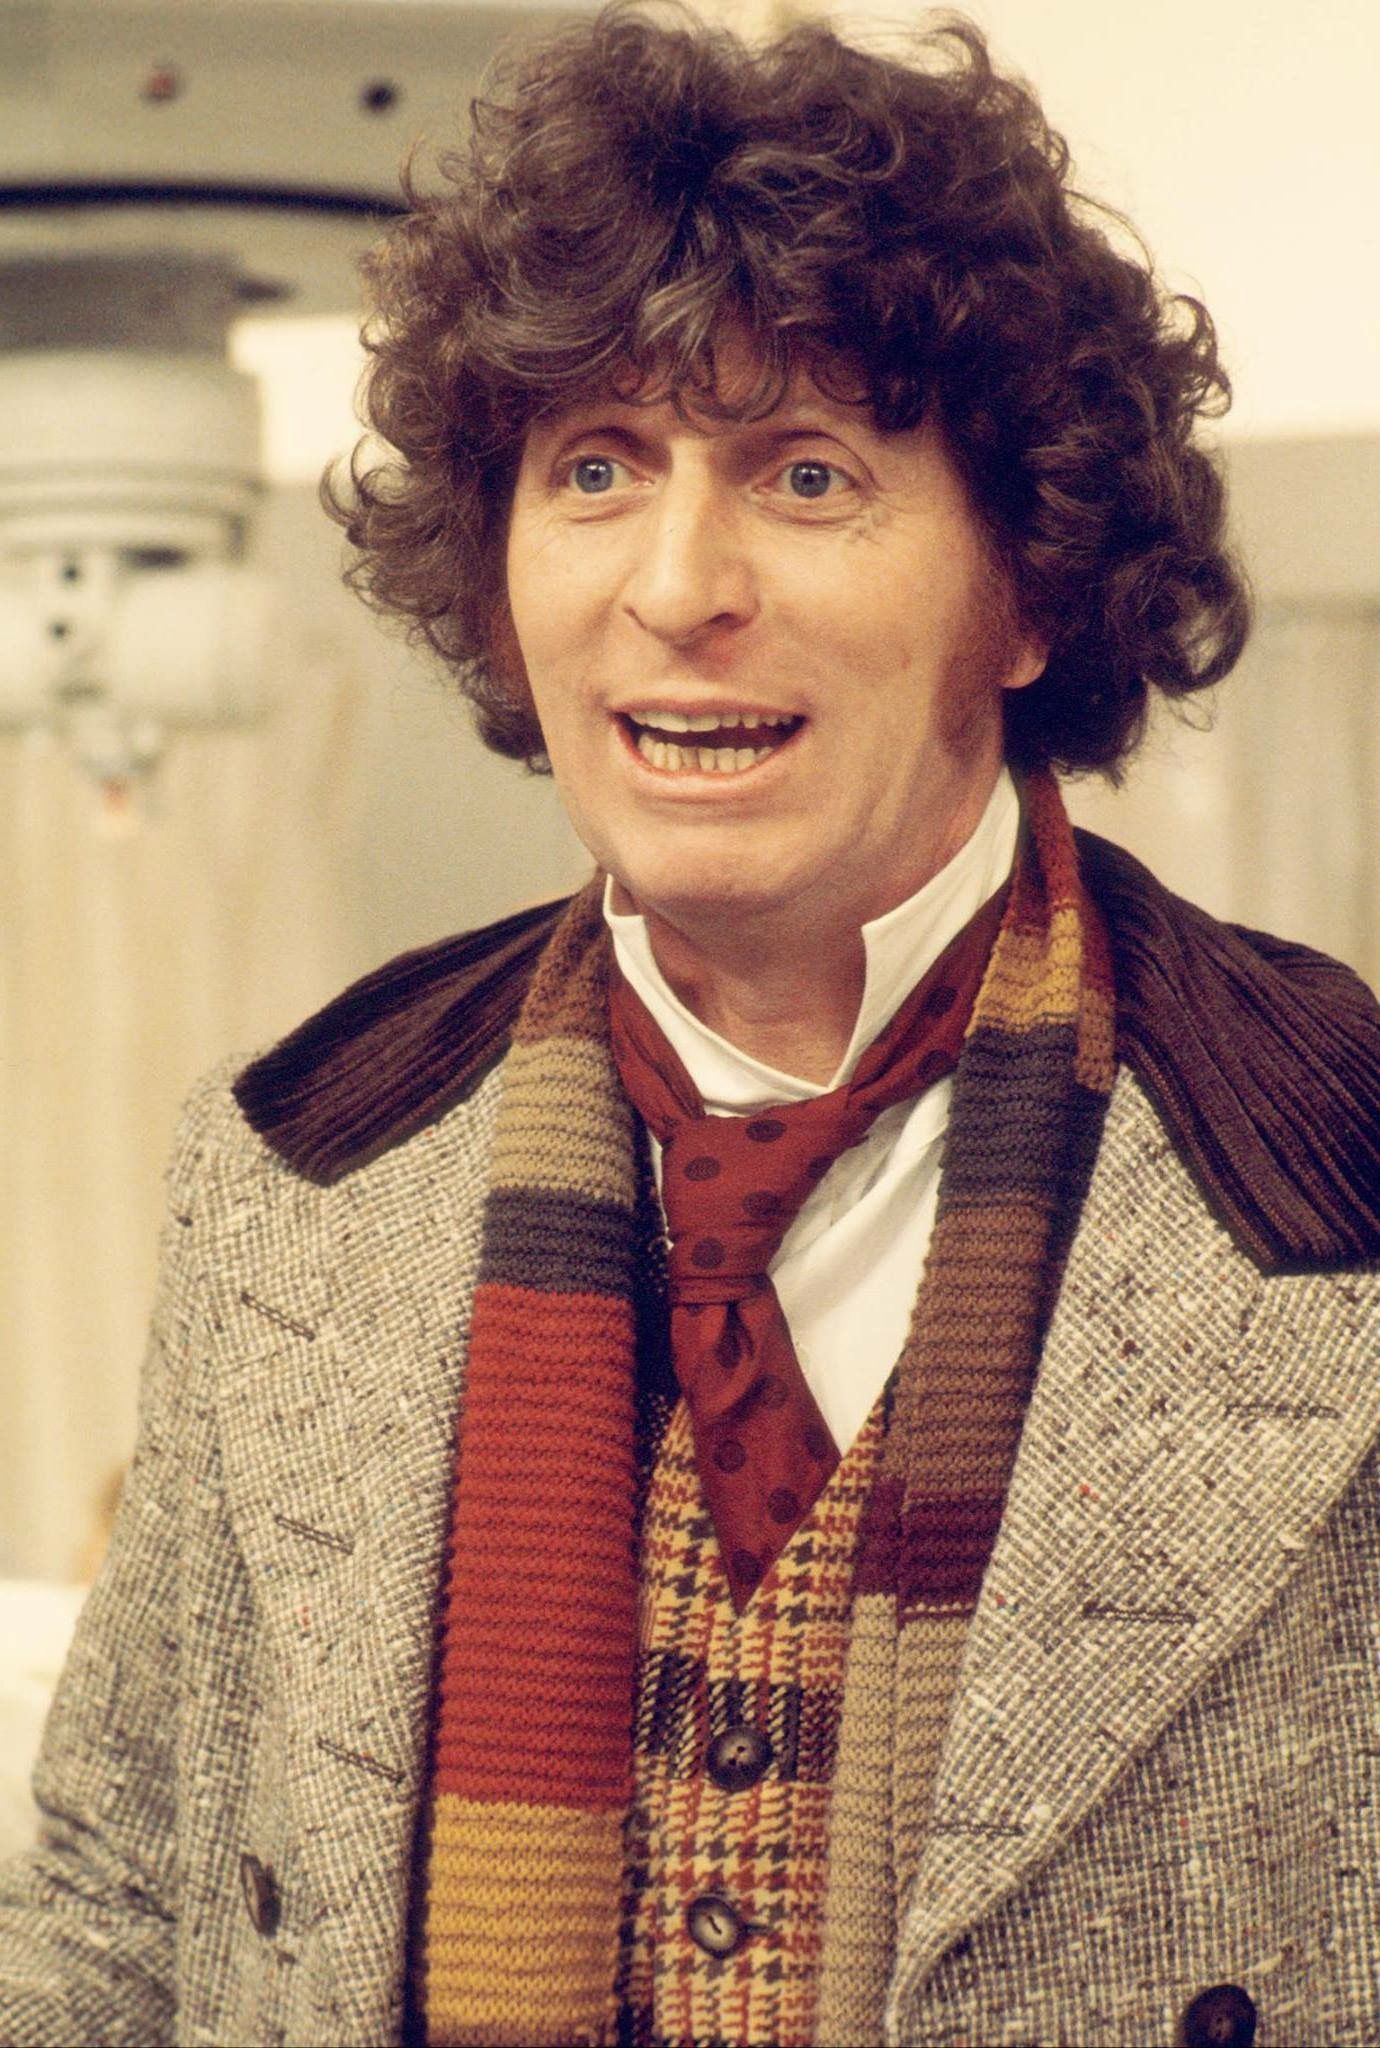 Tom Baker as Doctor Who. Credit: BBC